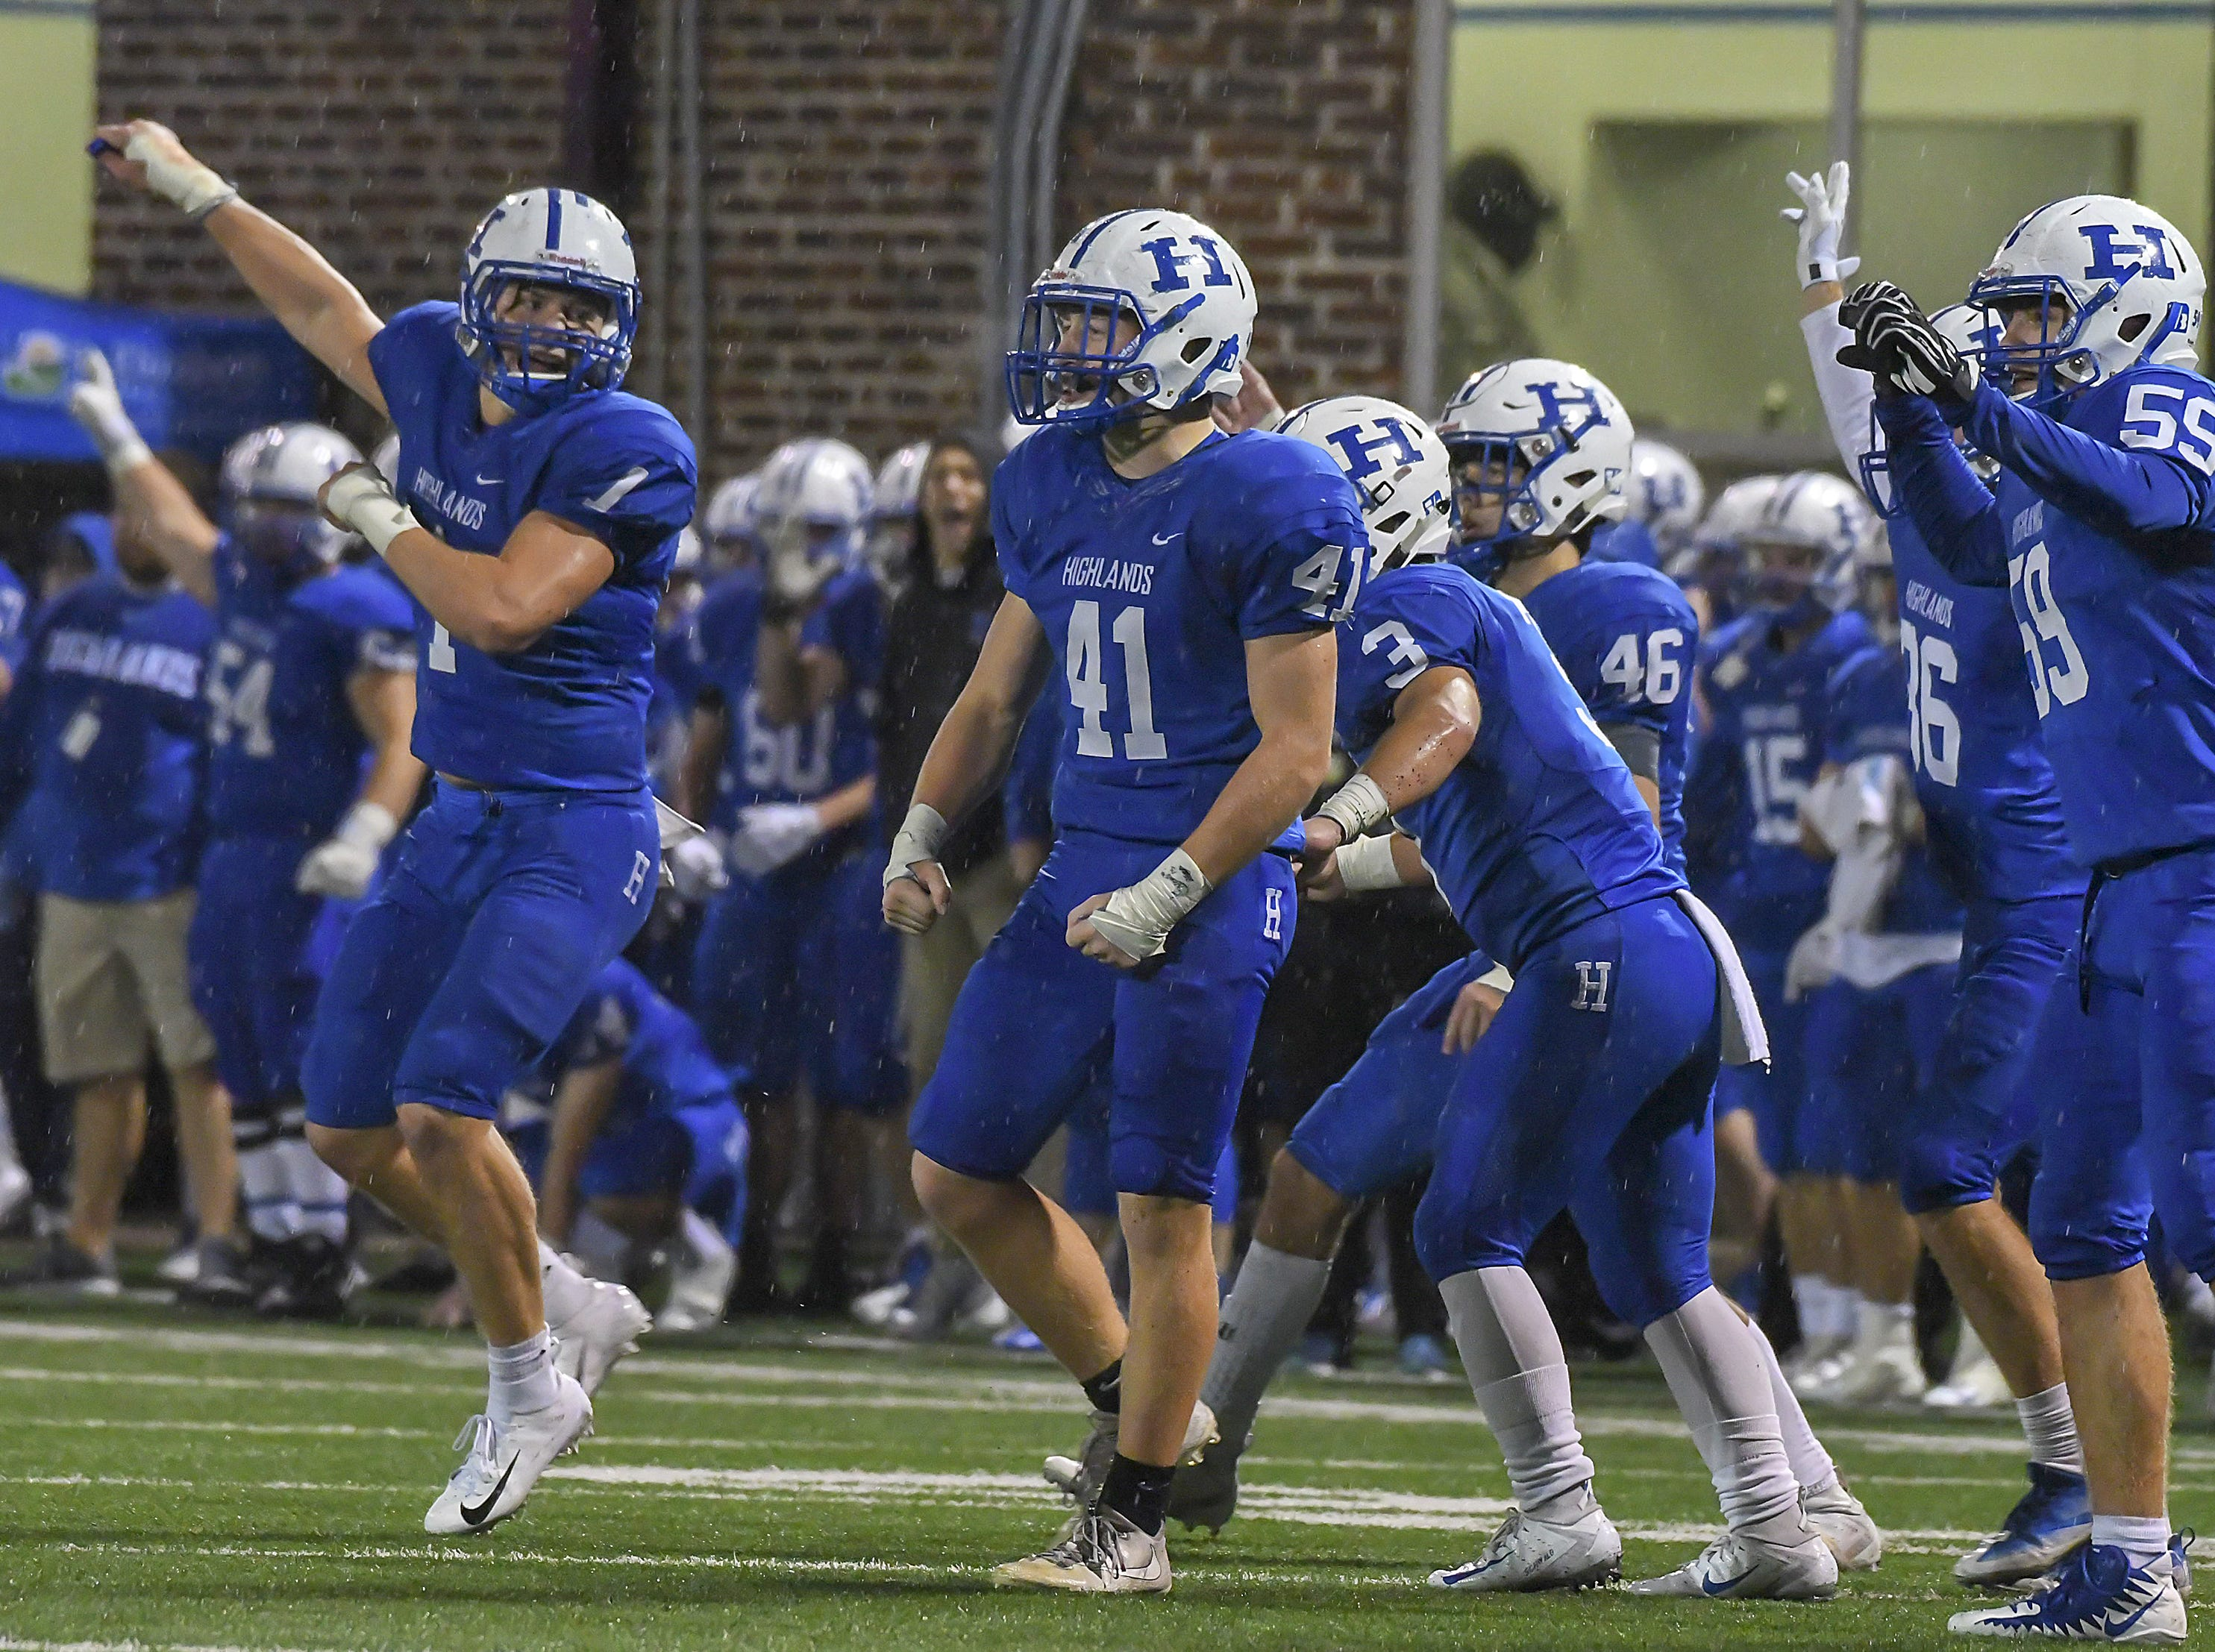 The Highlands Bluebirds celebrate after a stop on fourth down against Covington Catholic, Highlands High School, Ft. Thomas, KY, Friday, October 12, 2018